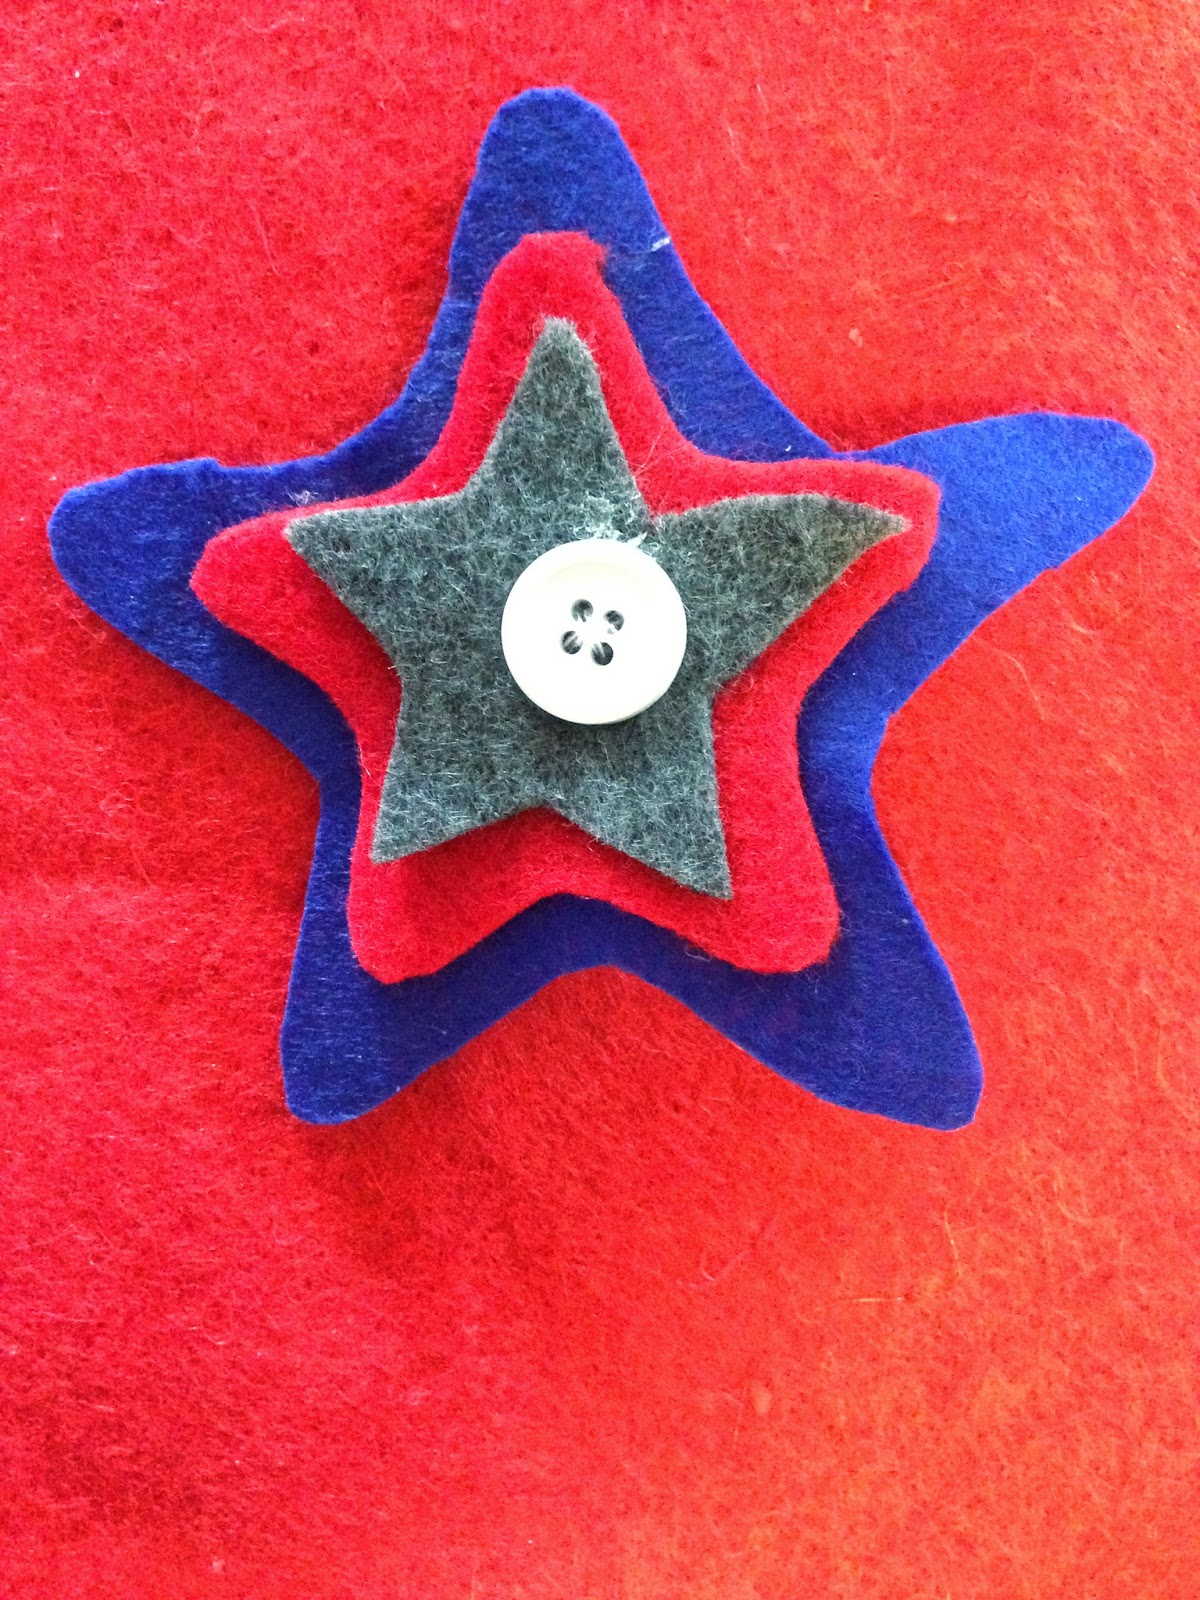 Tutorial for Patriotic Felt Star Hair Clips #tutorial #fourthofjuly #crafts #kids #hair